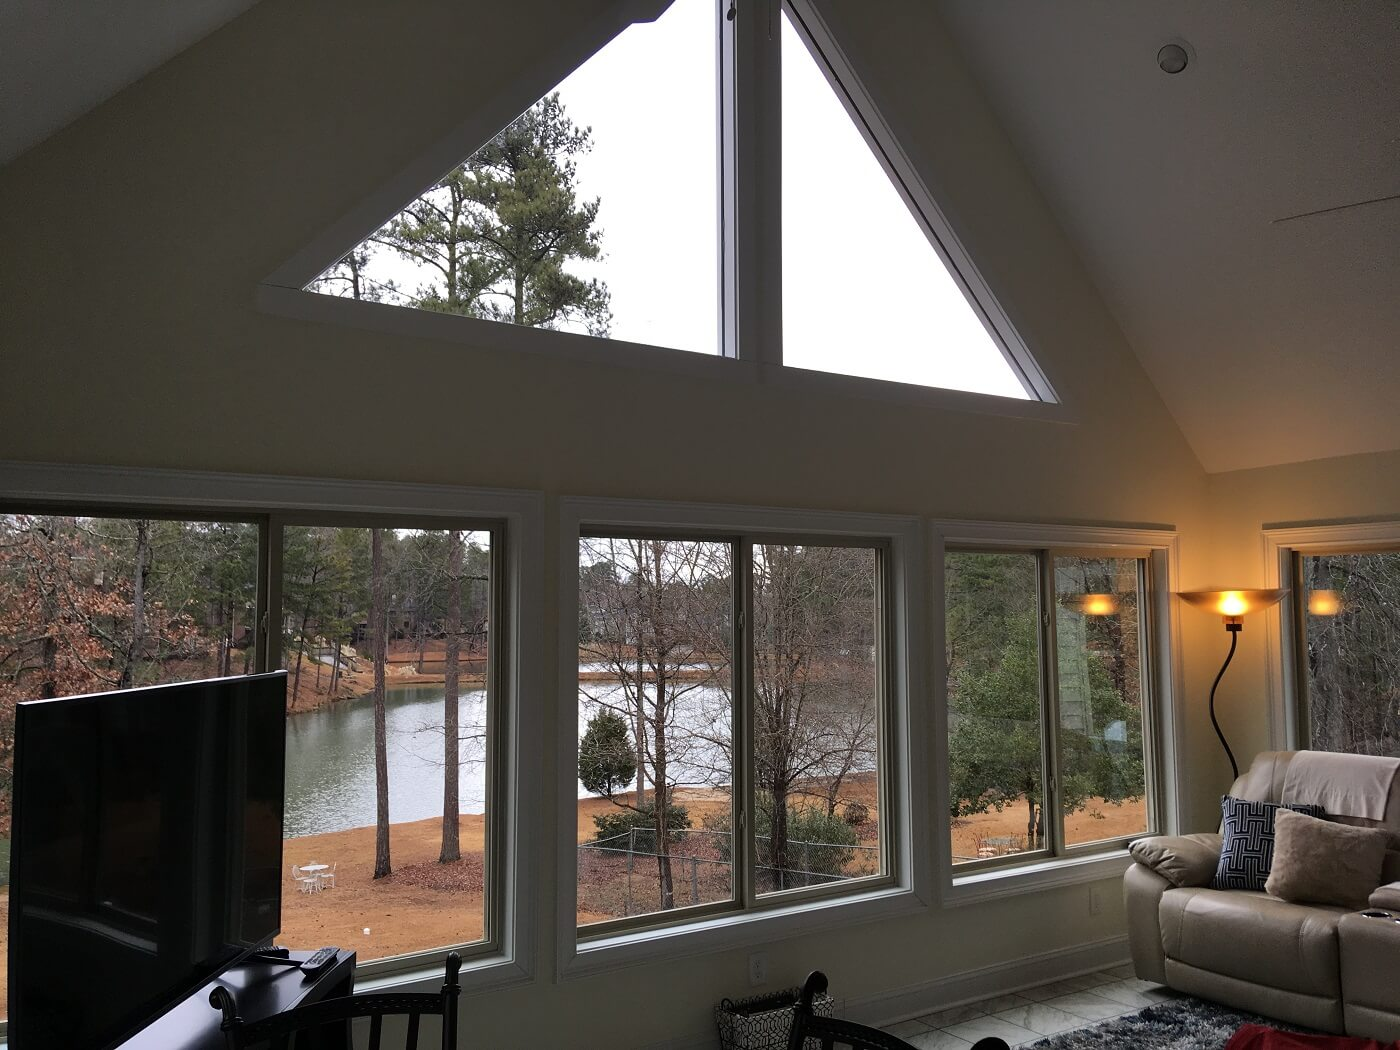 Interior of sunroom with private pond view